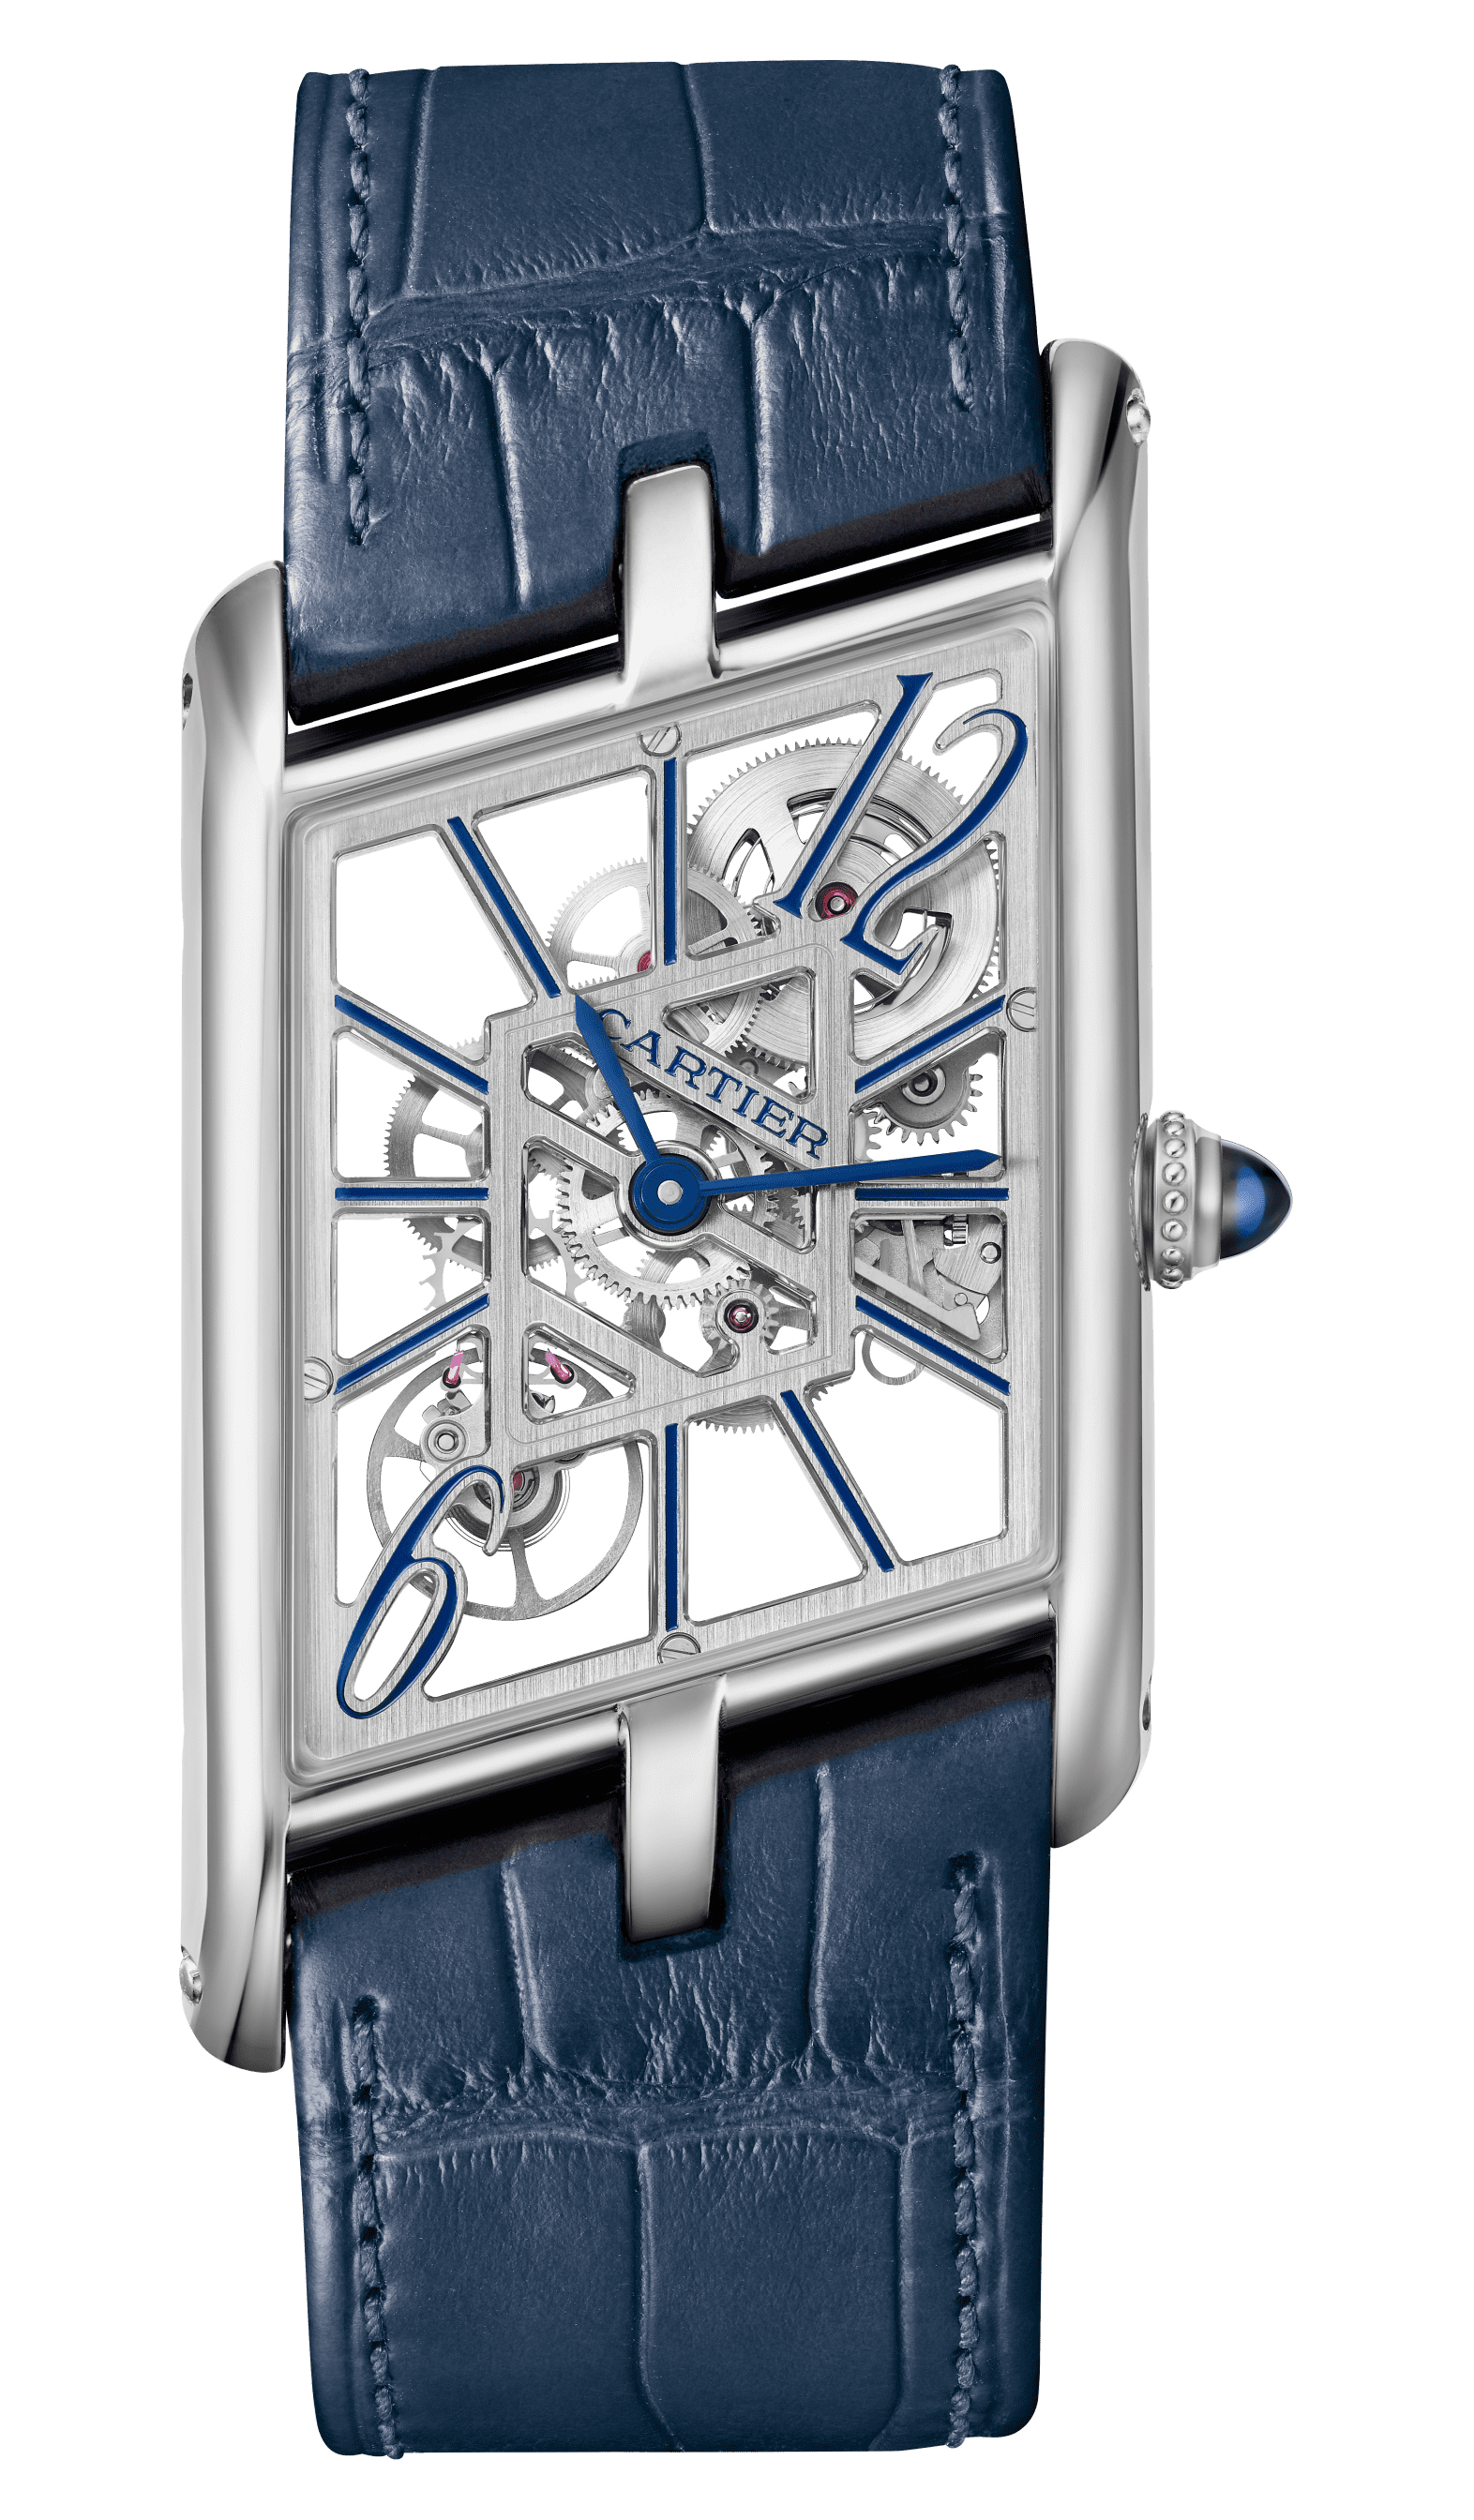 Cartier 2020 collection